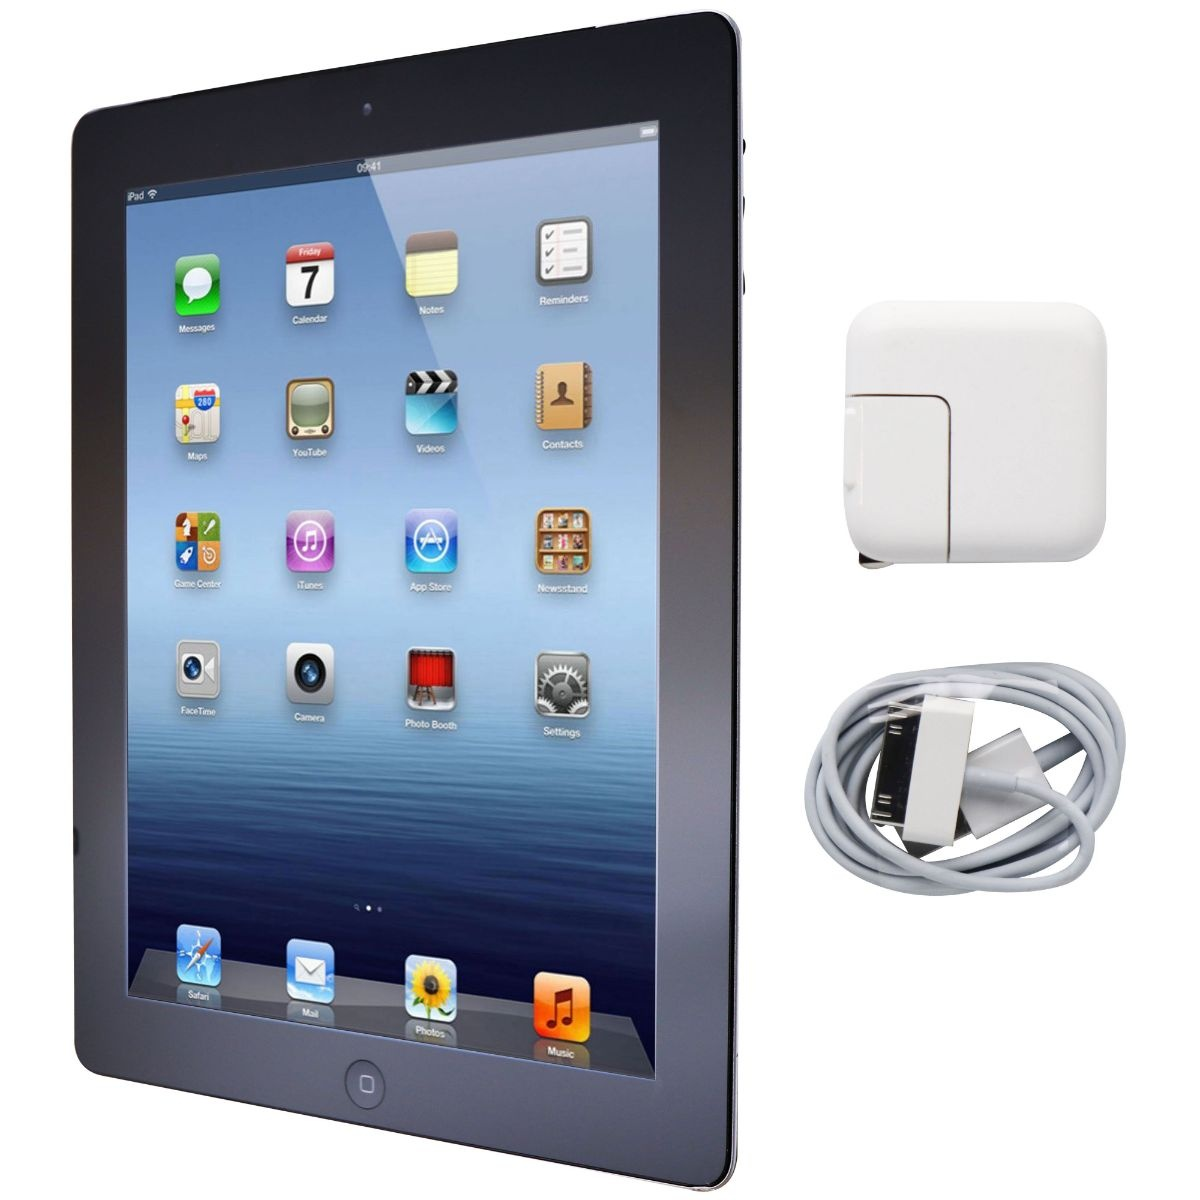 Apple iPad 9.7-inch (3rd Generation) Tablet A1416 (Wi-Fi ONLY) - 16GB / Black